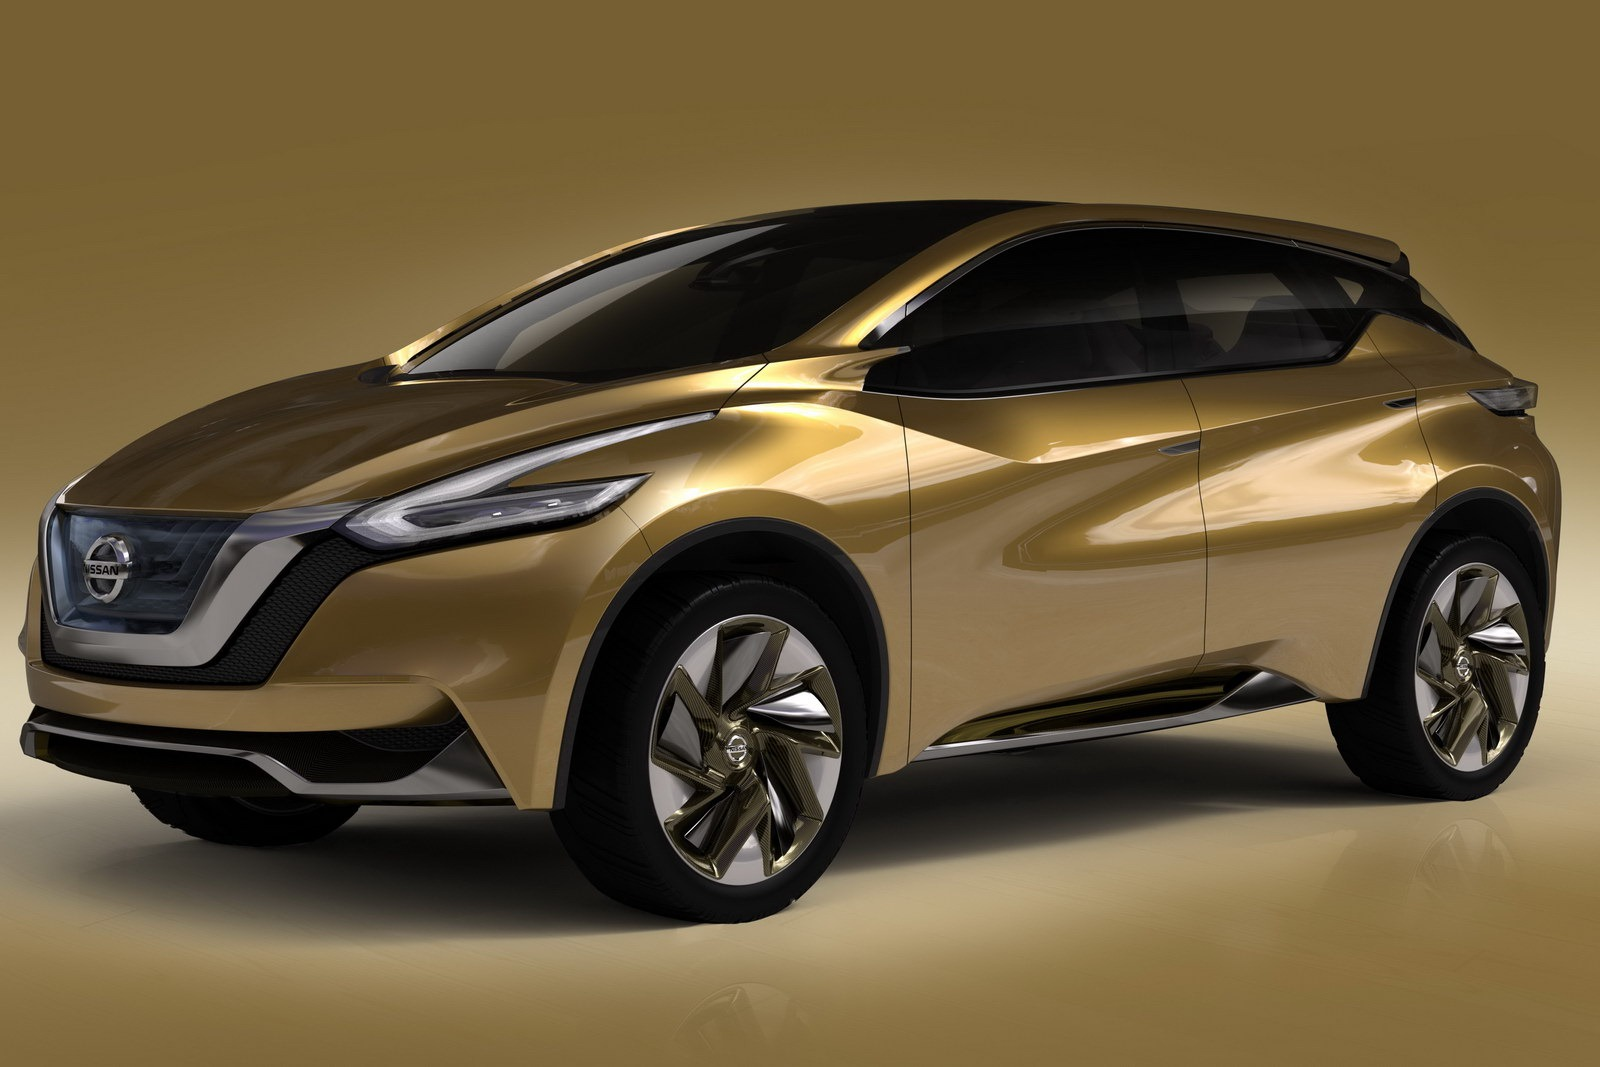 2013 Nissan Resonance Concept Revealed Autoevolution